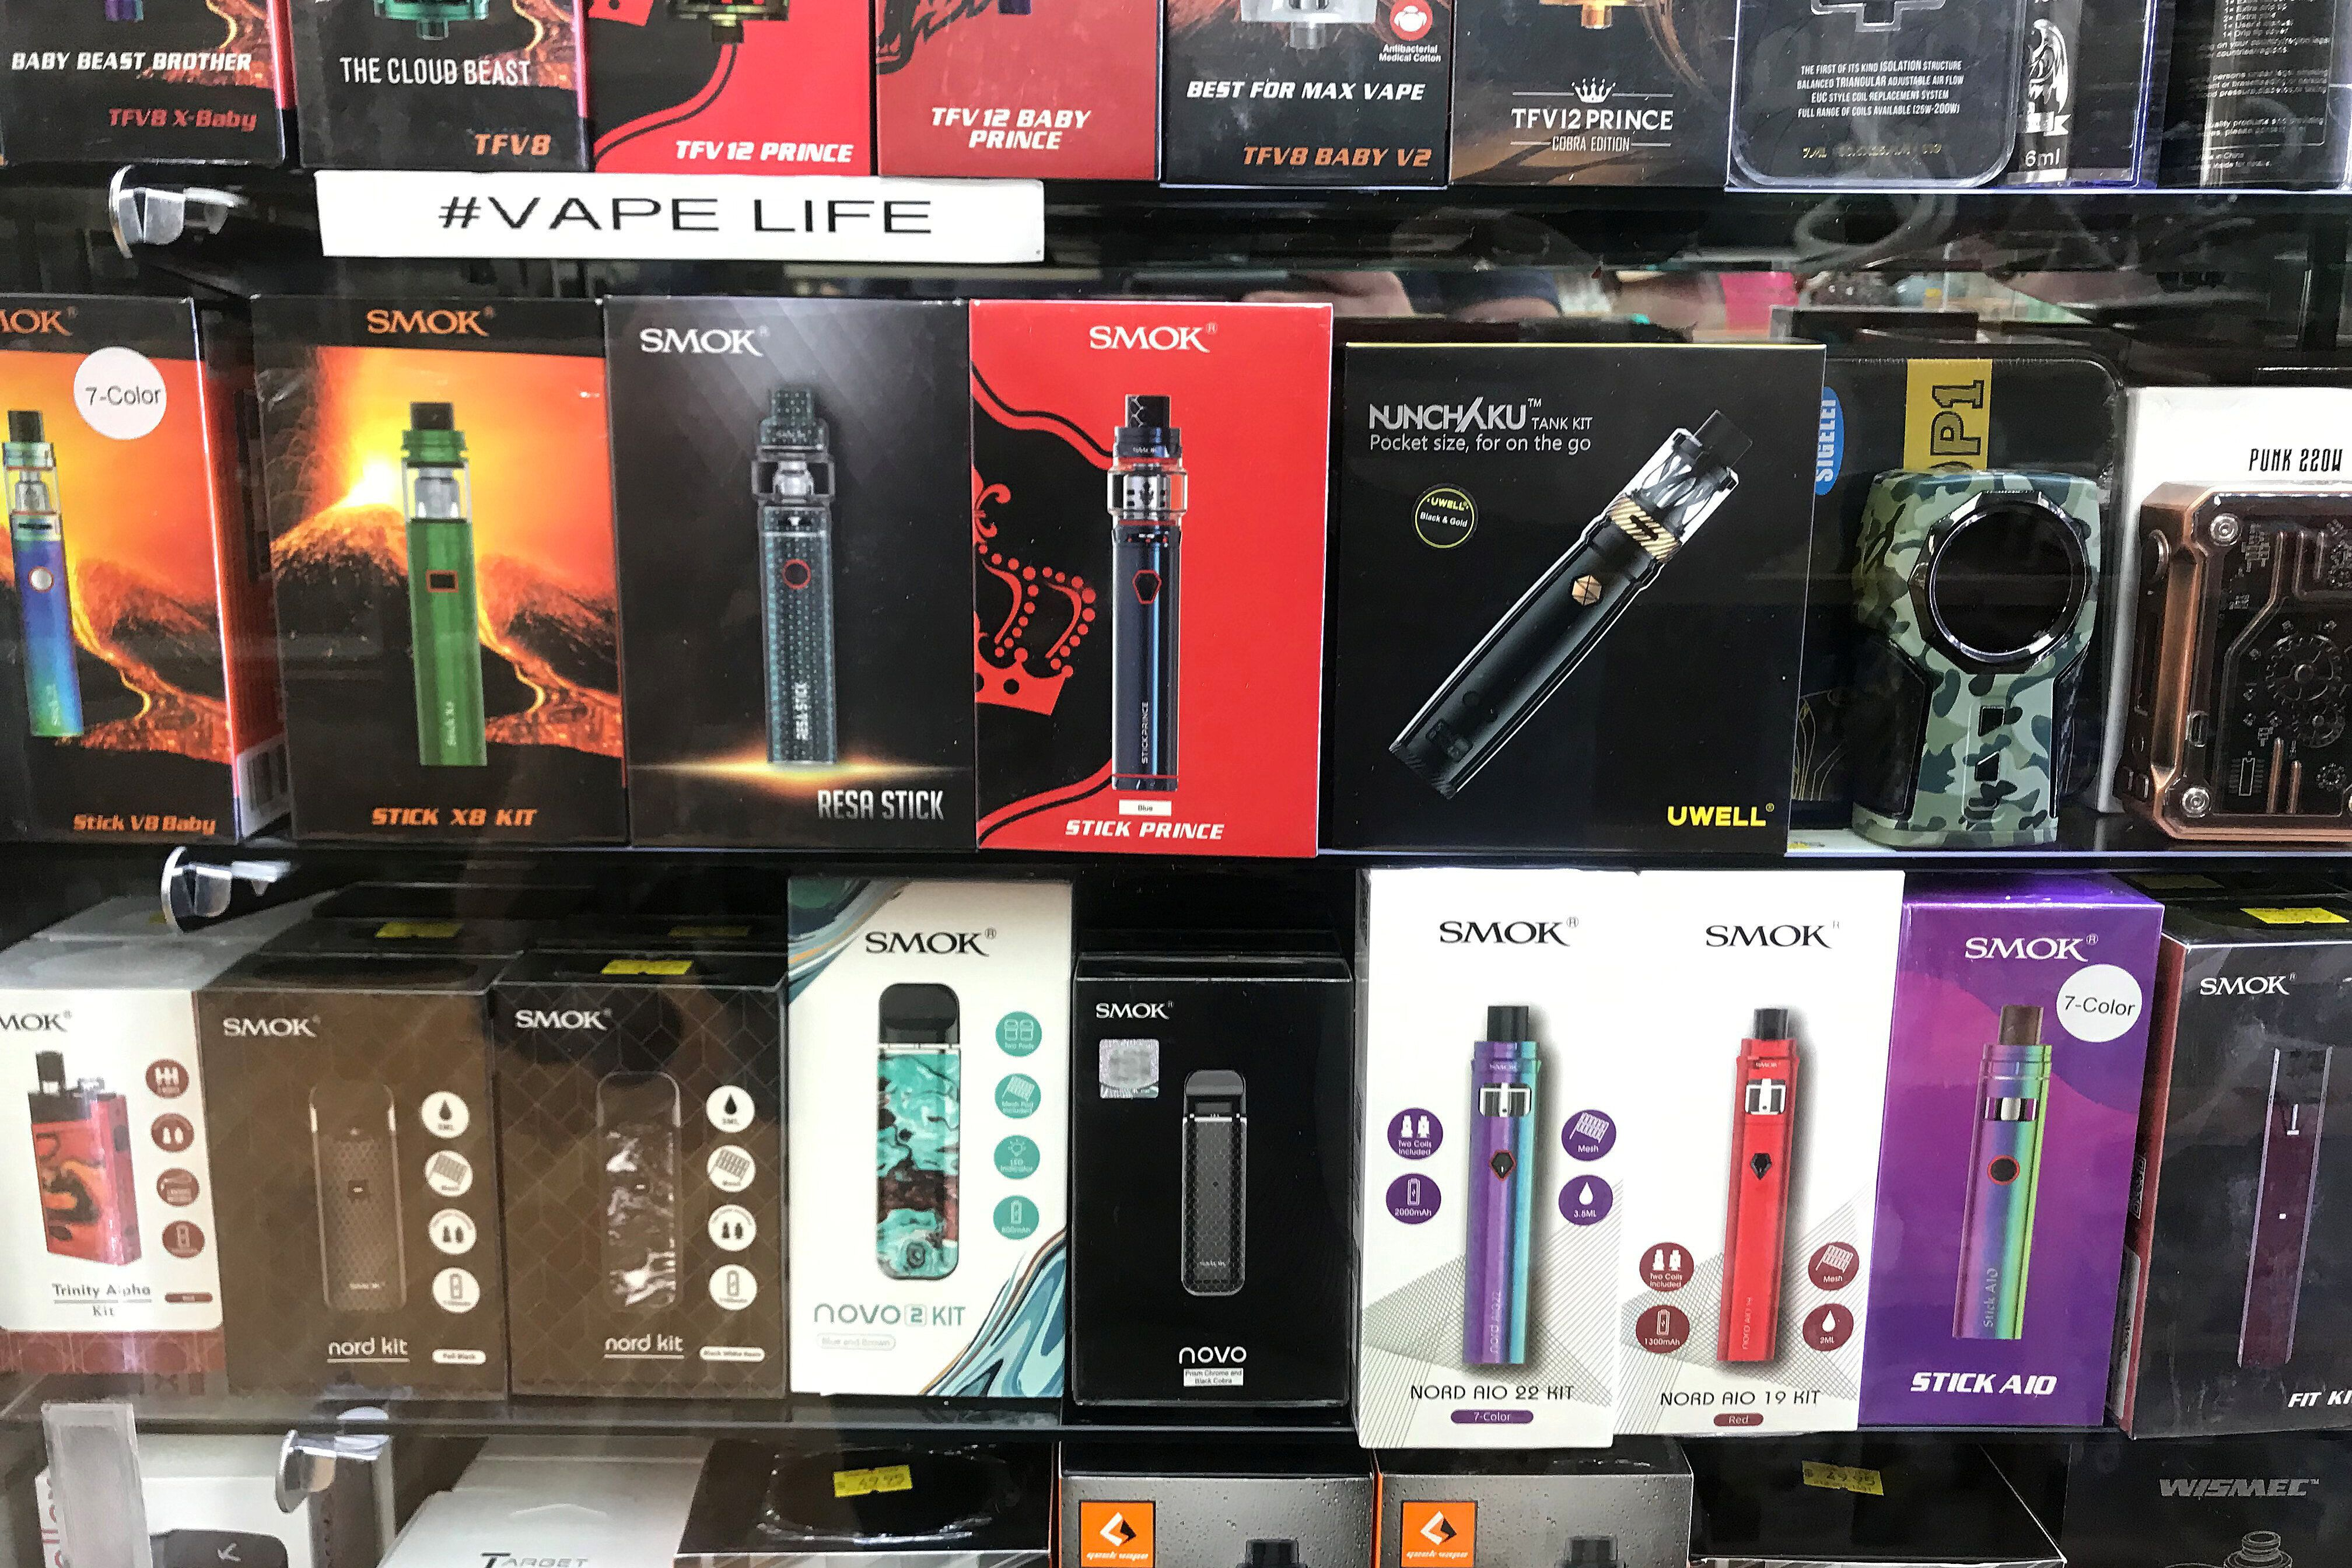 Vaping products on display in a store window in New York City.